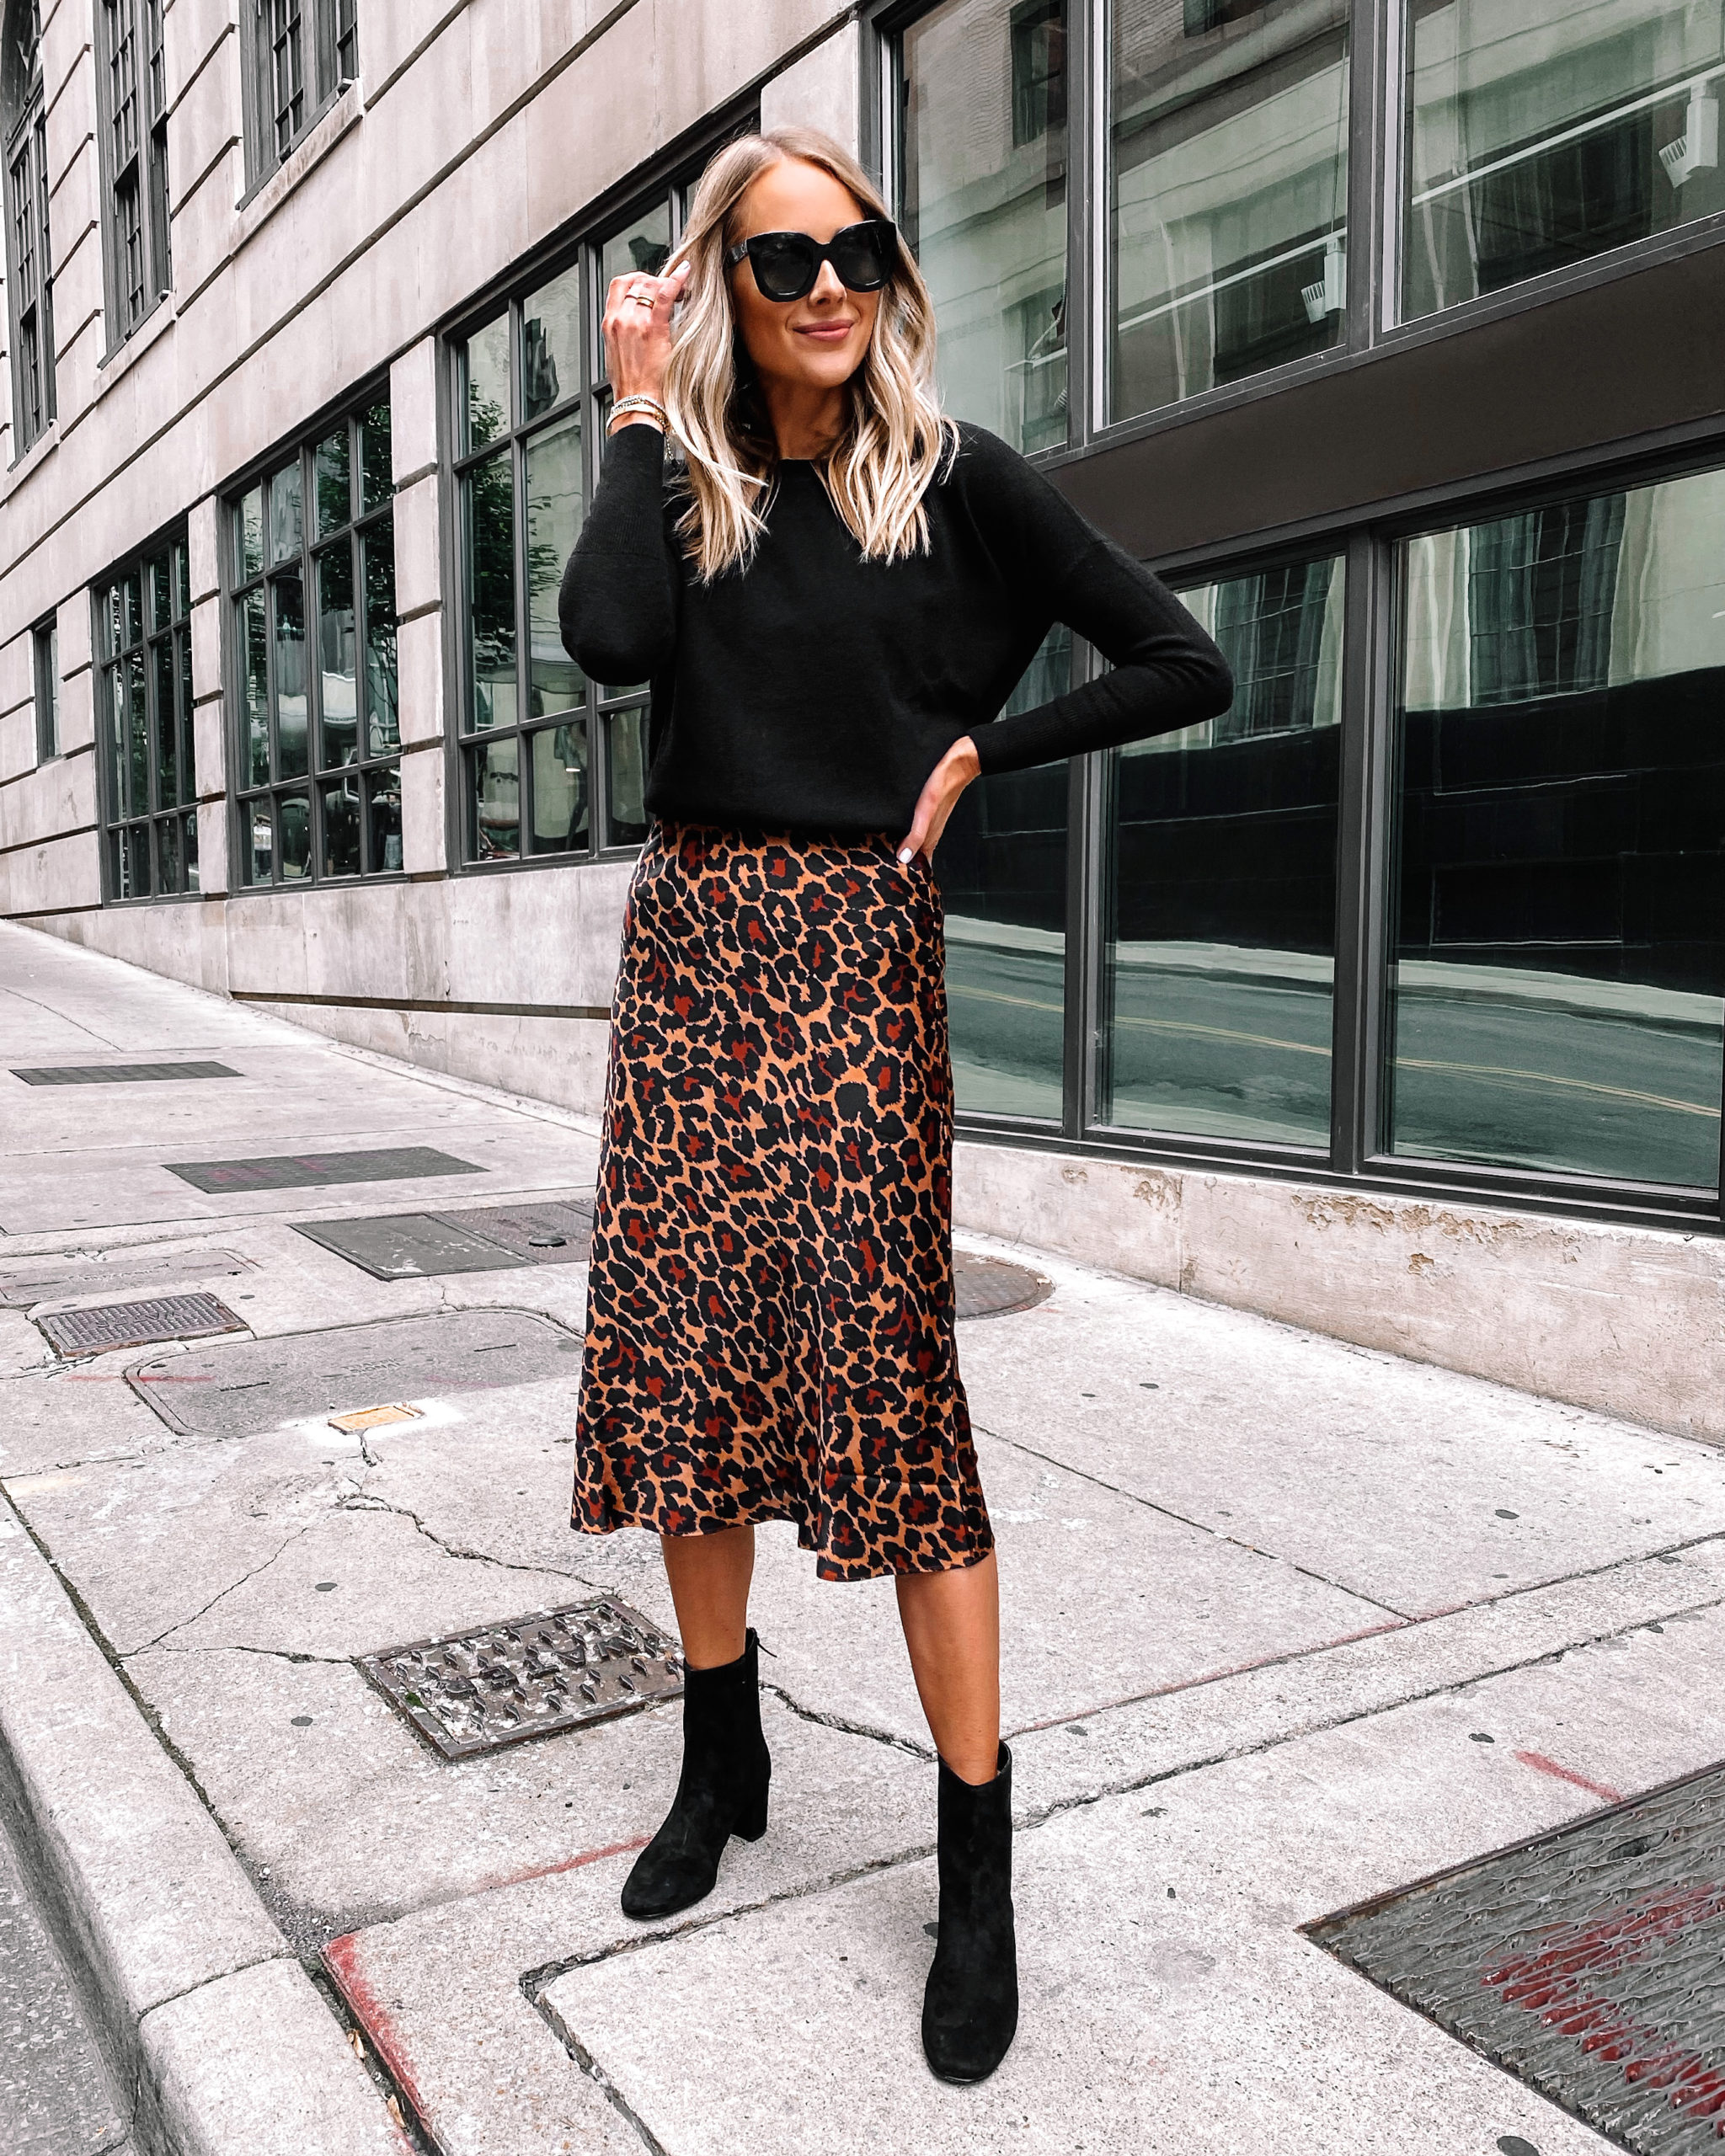 Fashion Jackson Wearing Jcrew Black Sweater Leopard Midi Skirt Black Booties